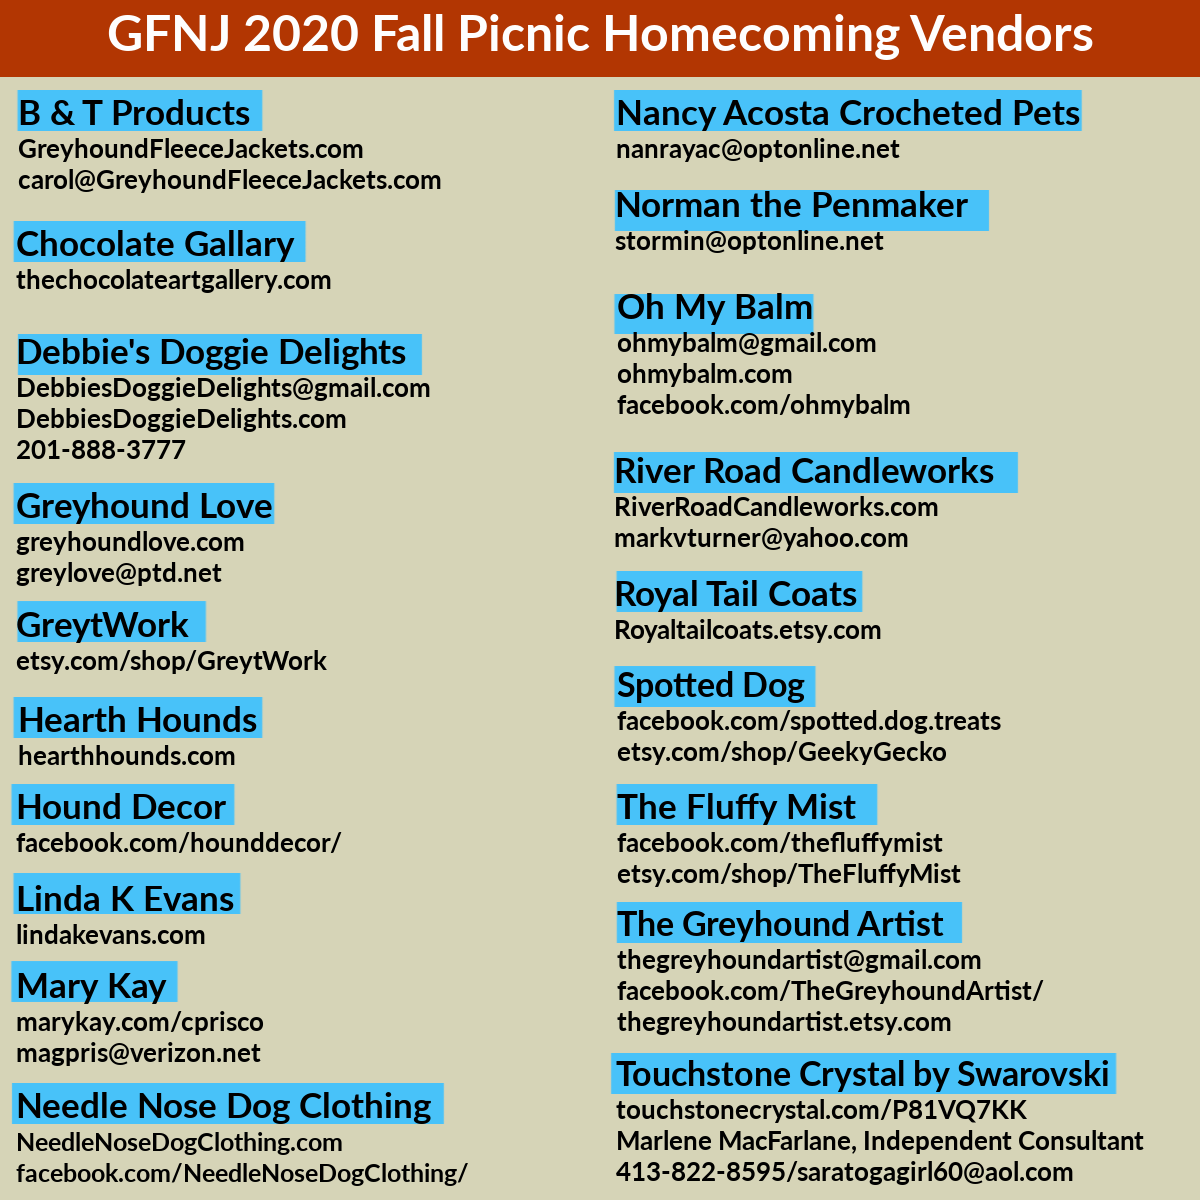 2020 Fall Picnic Vendors